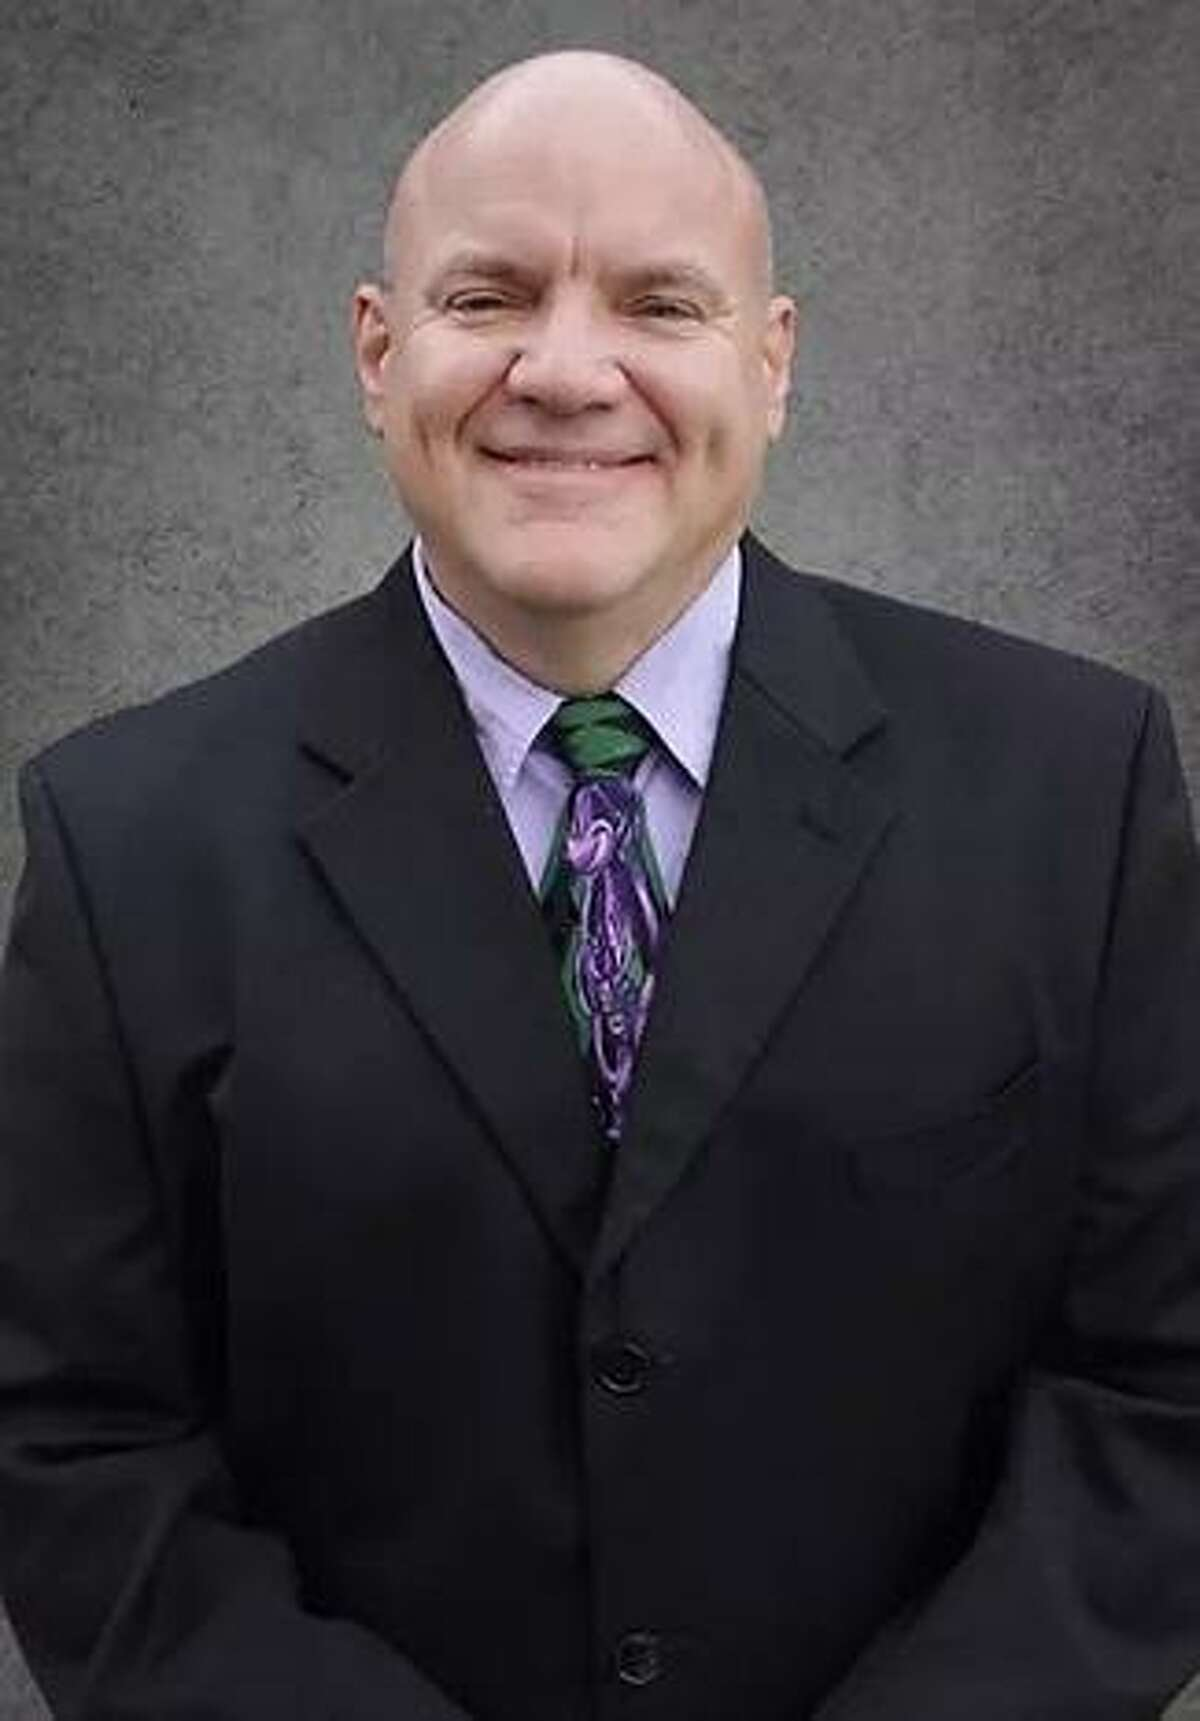 Jeff Hunkele is running for Pearland City Council Position 7. His oppoents are incumbent Woody Owens and Mashunda Ivery.